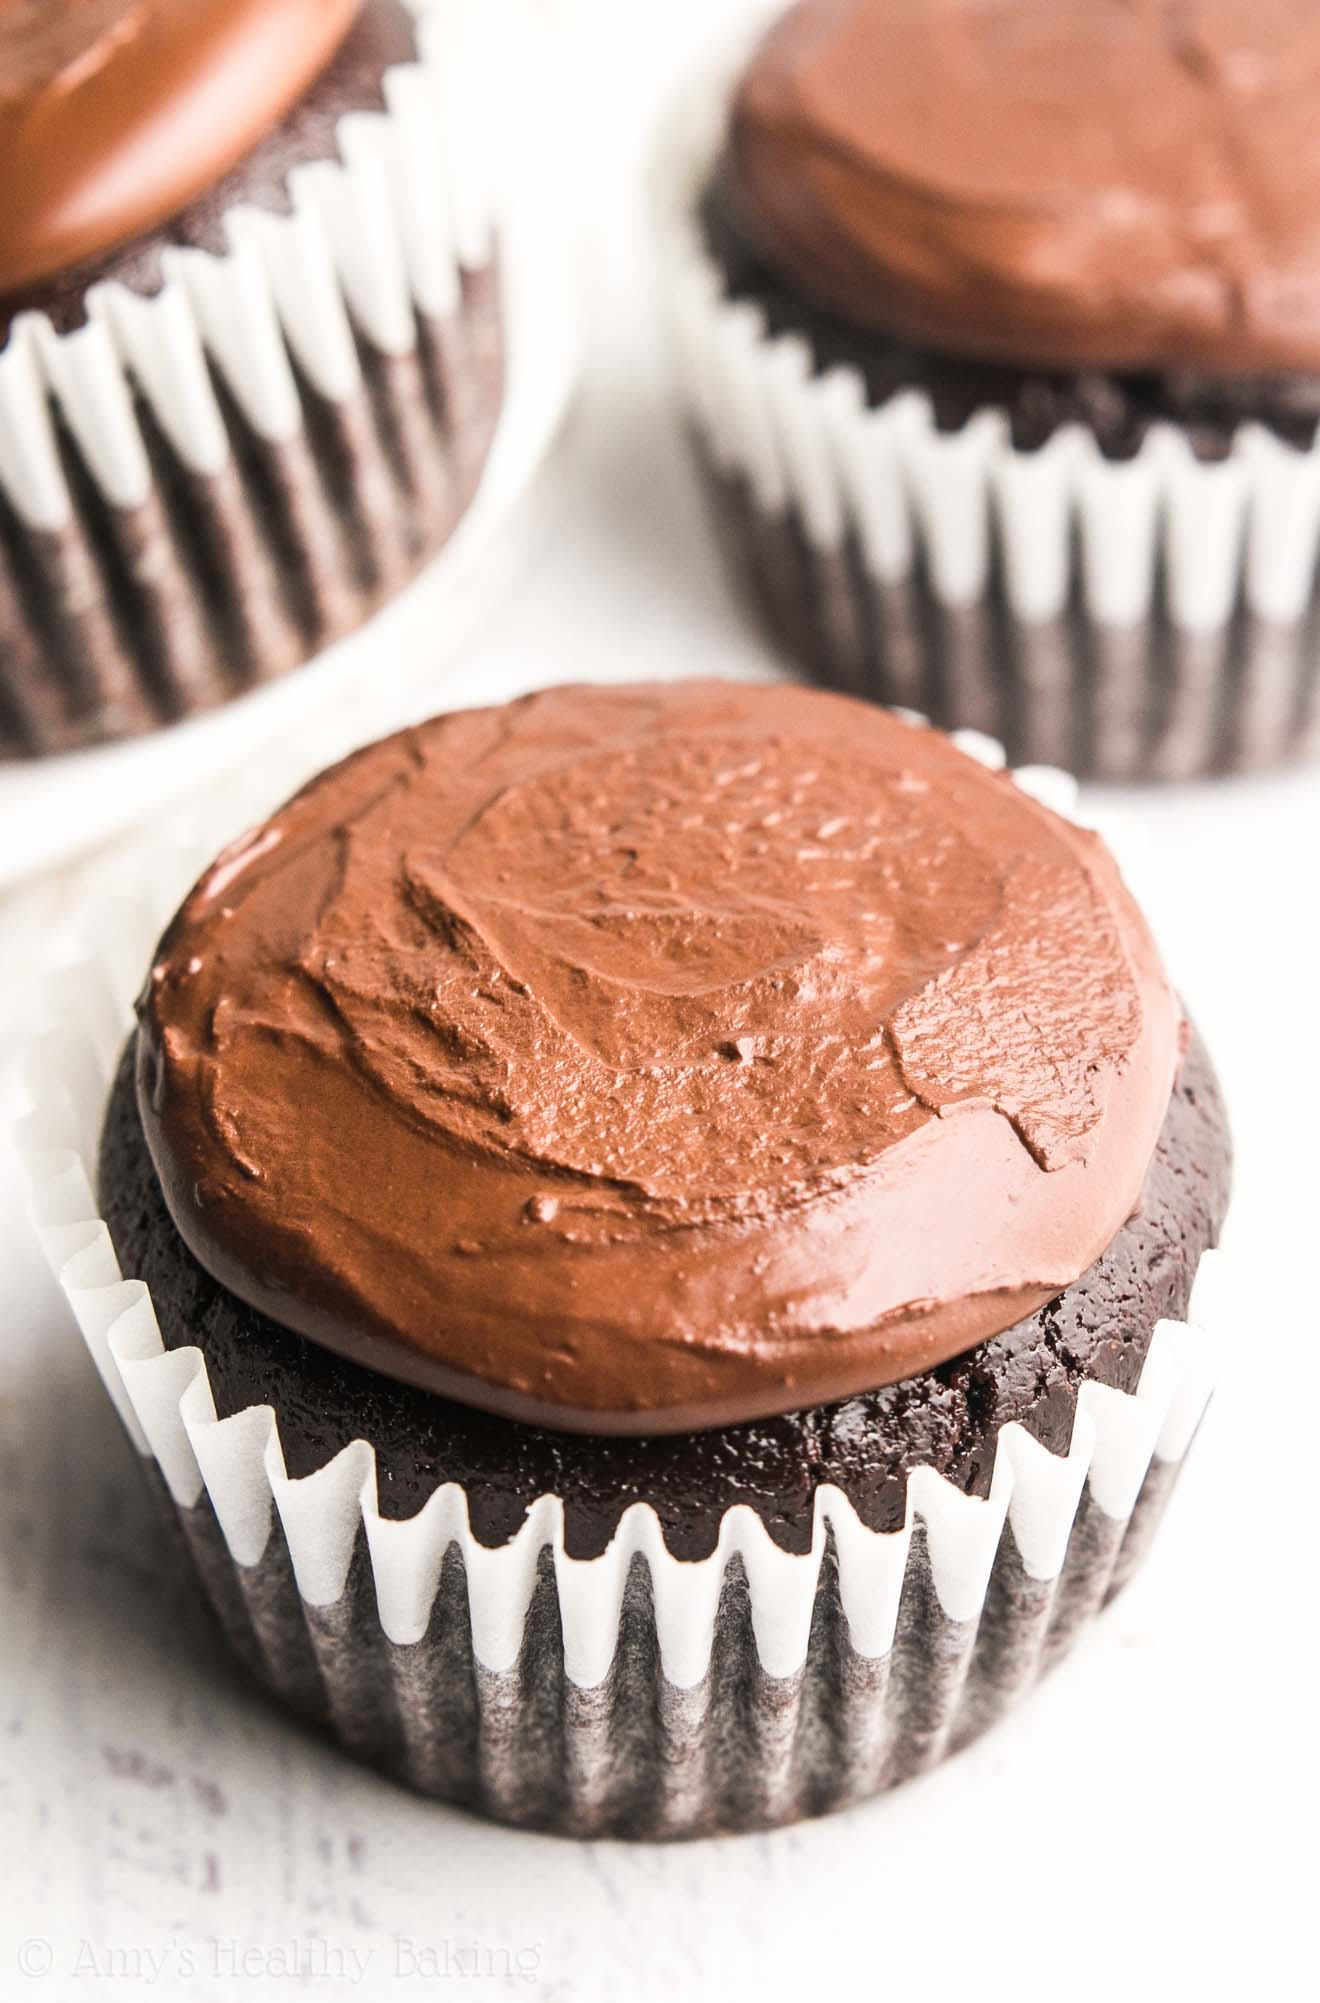 Healthy Chocolate Cupcakes  The Ultimate Healthy Dark Chocolate Cupcakes